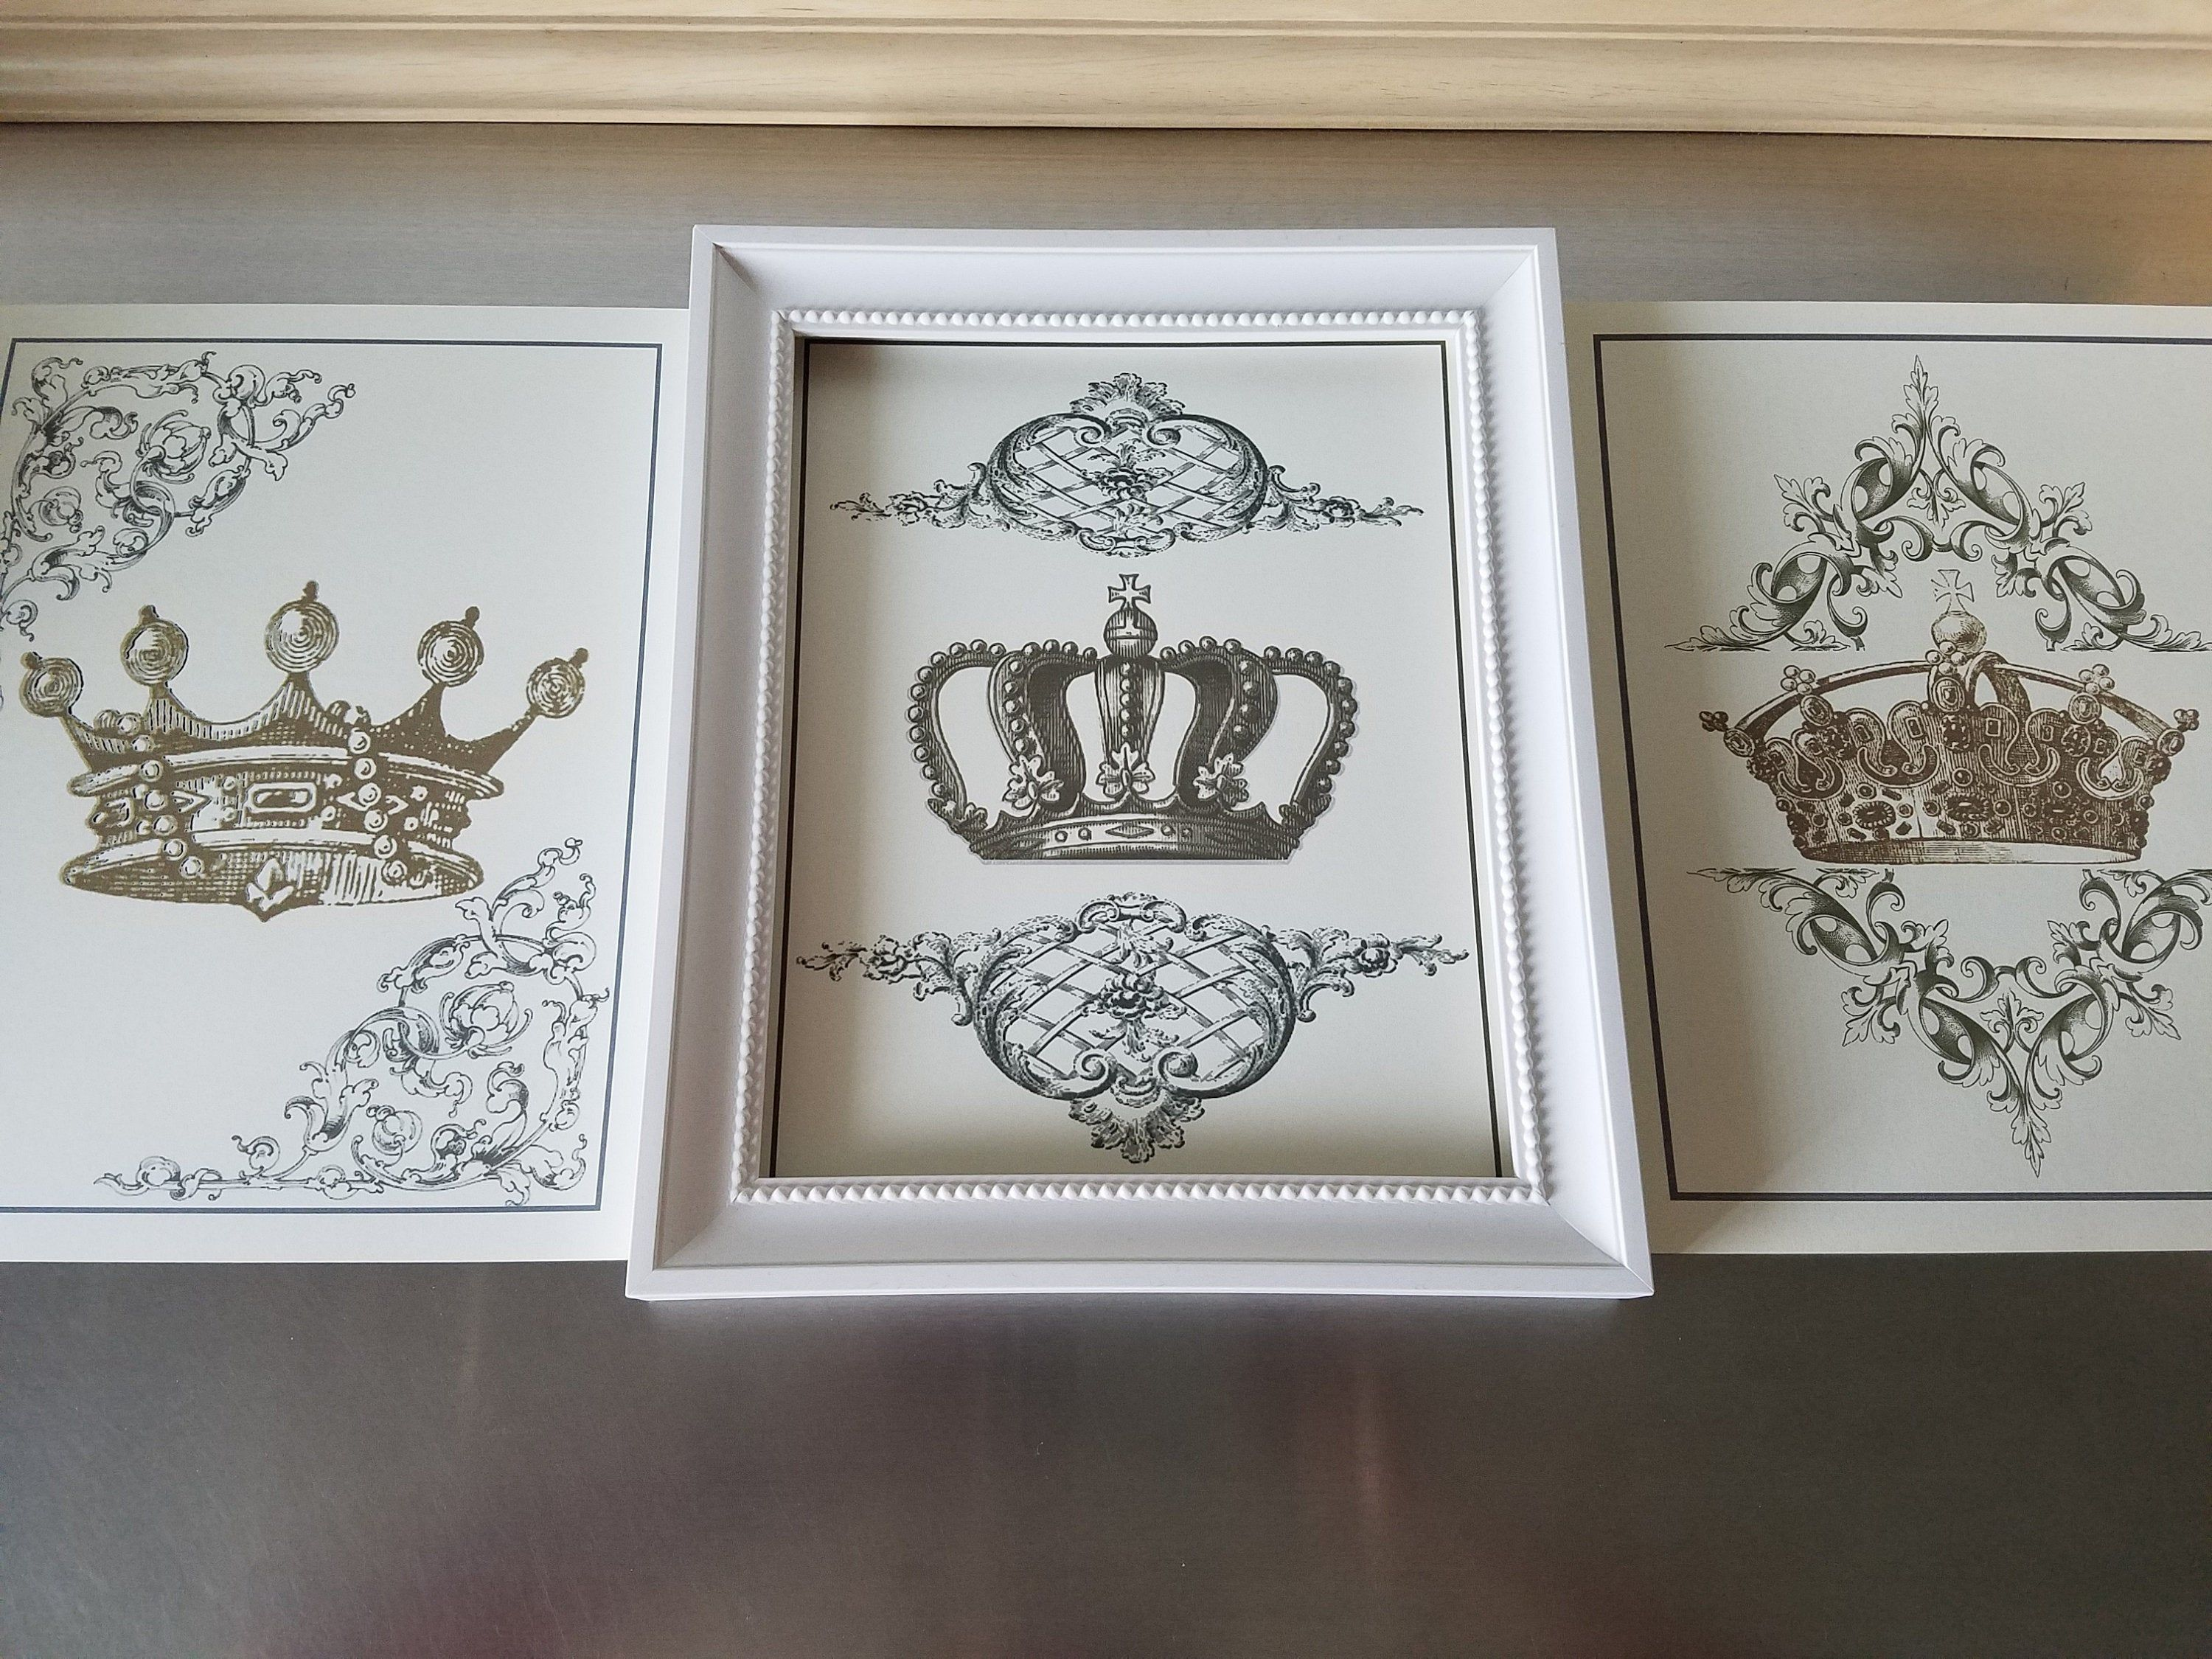 Crown Prints Set Of 3 Unframed 8 X 10 Posters French Country Wall Decor Modern Farmhouse Art French Country Wall Decor Country Wall Decor Country Wall Art